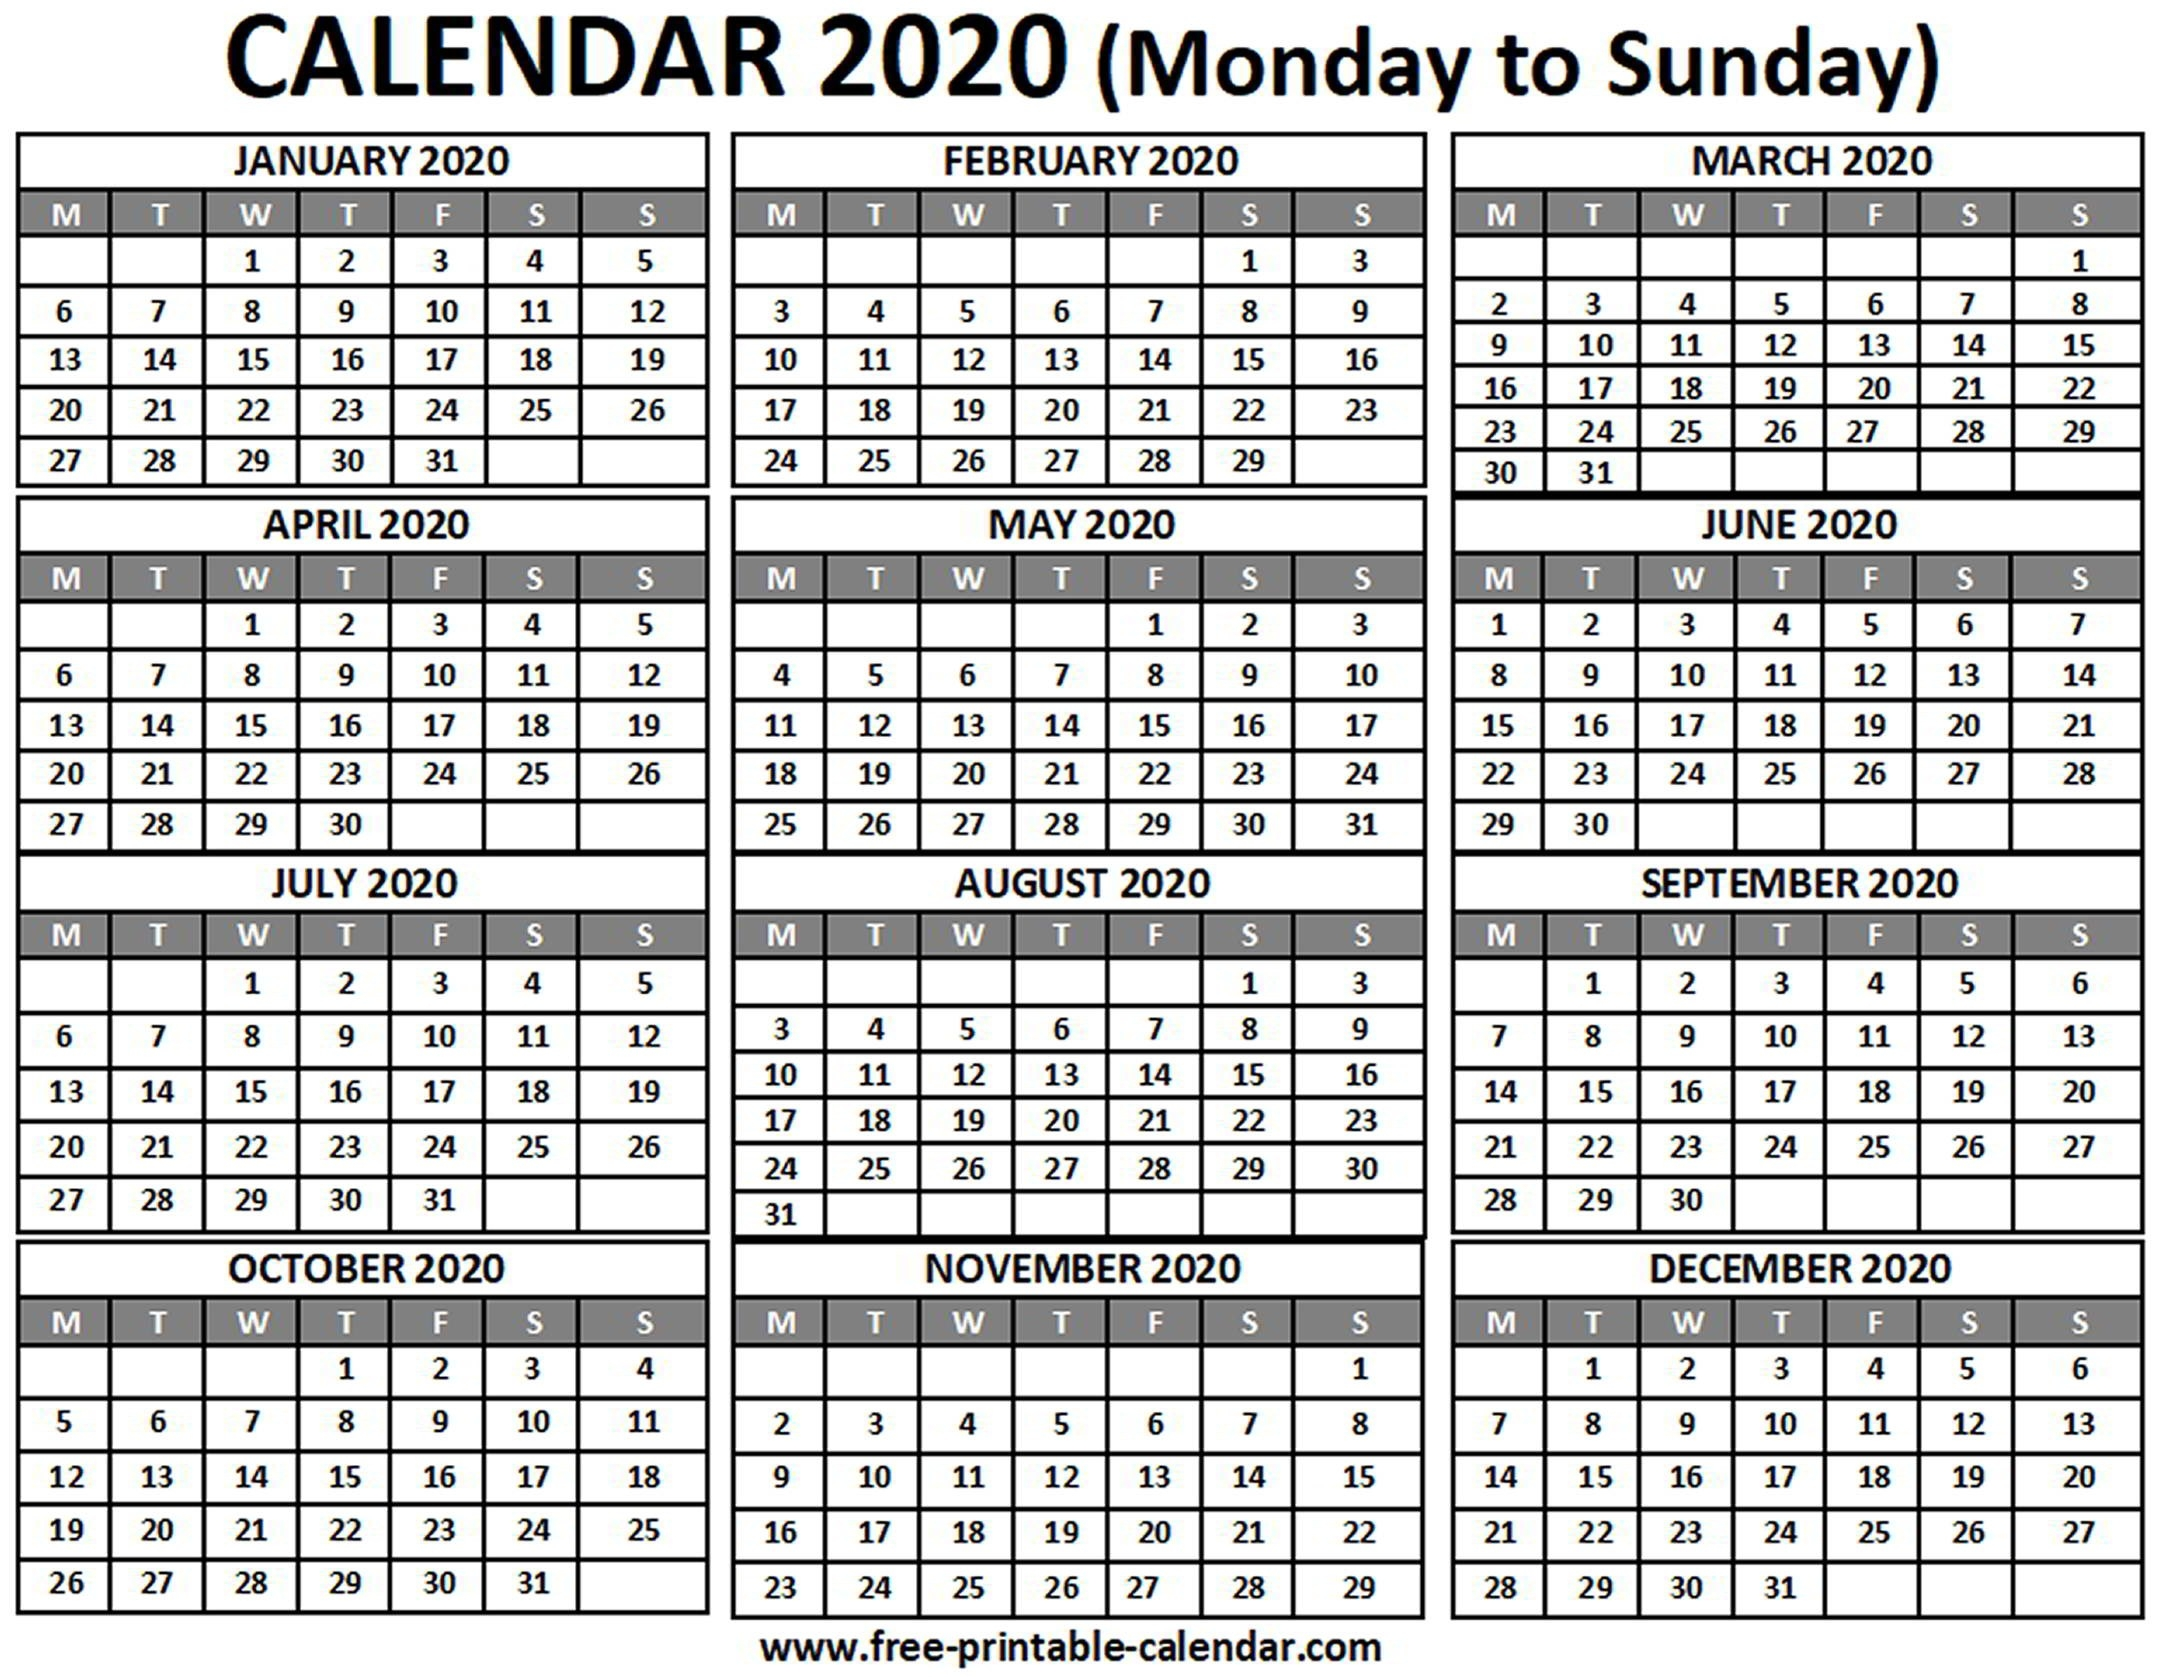 2020 Calendar - Free-Printable-Calendar-Month Template 2020 Printable Free Starting On Monday